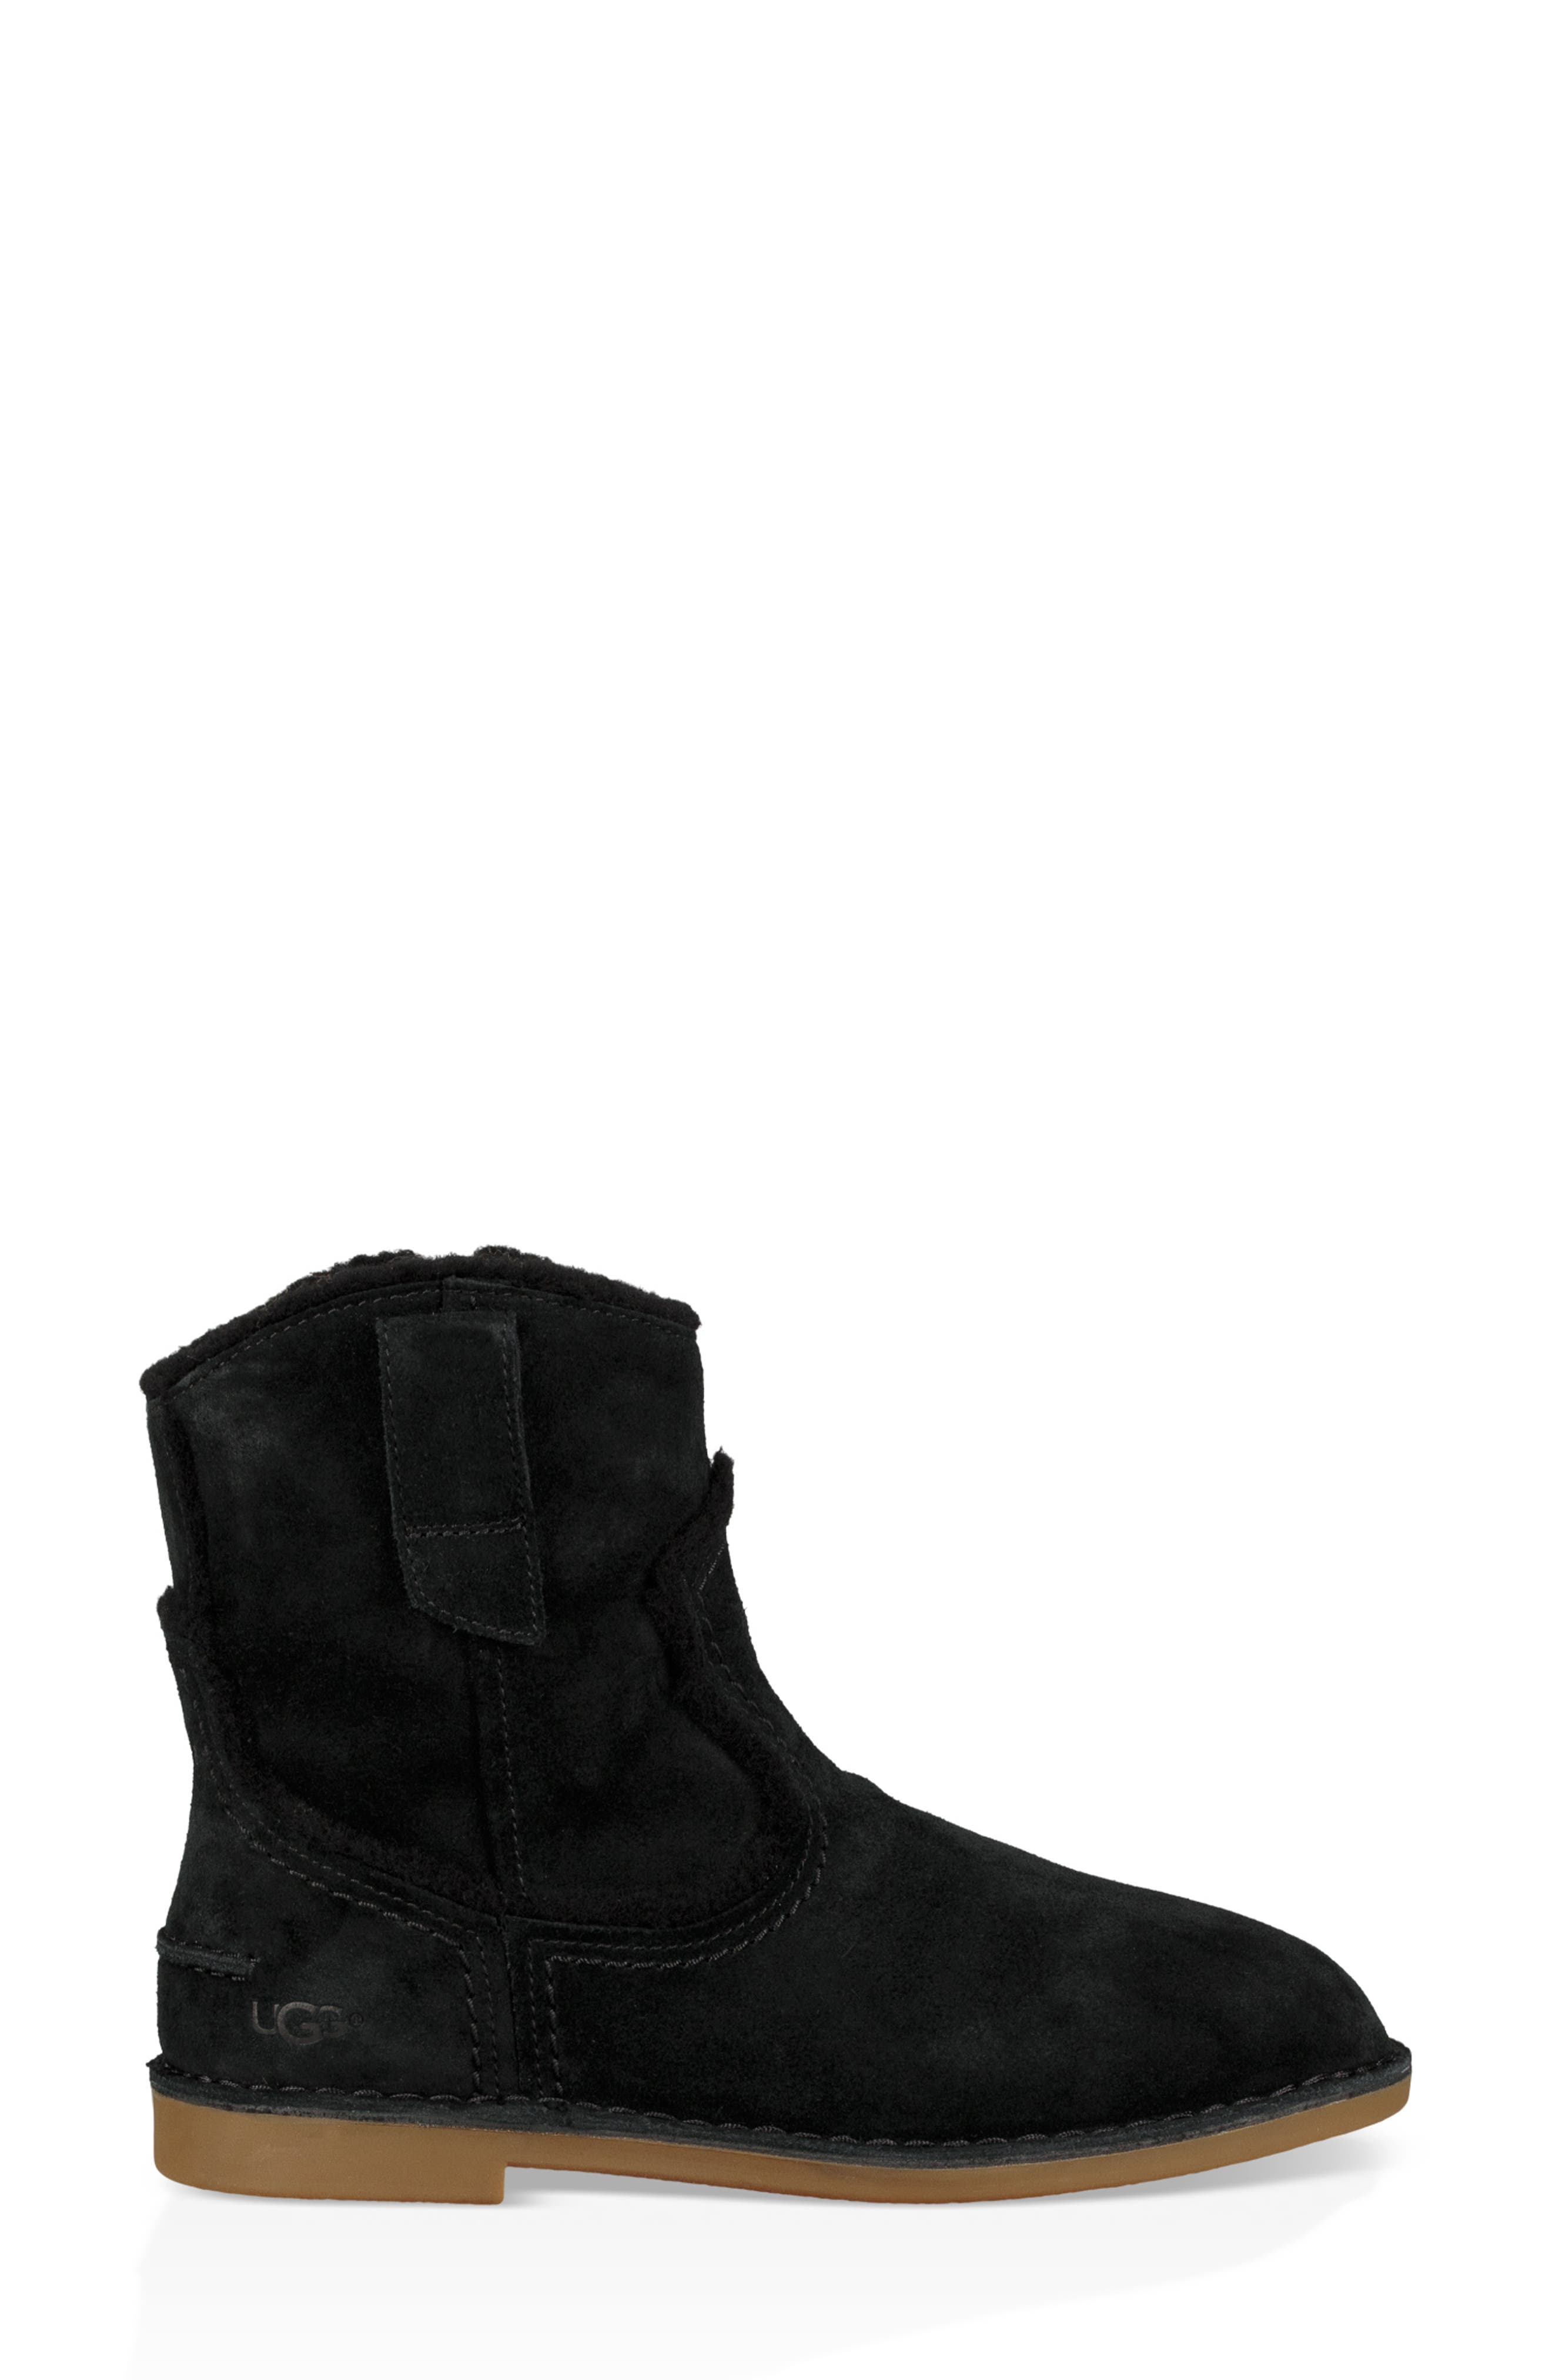 Catica Boot,                             Alternate thumbnail 3, color,                             BLACK SUEDE